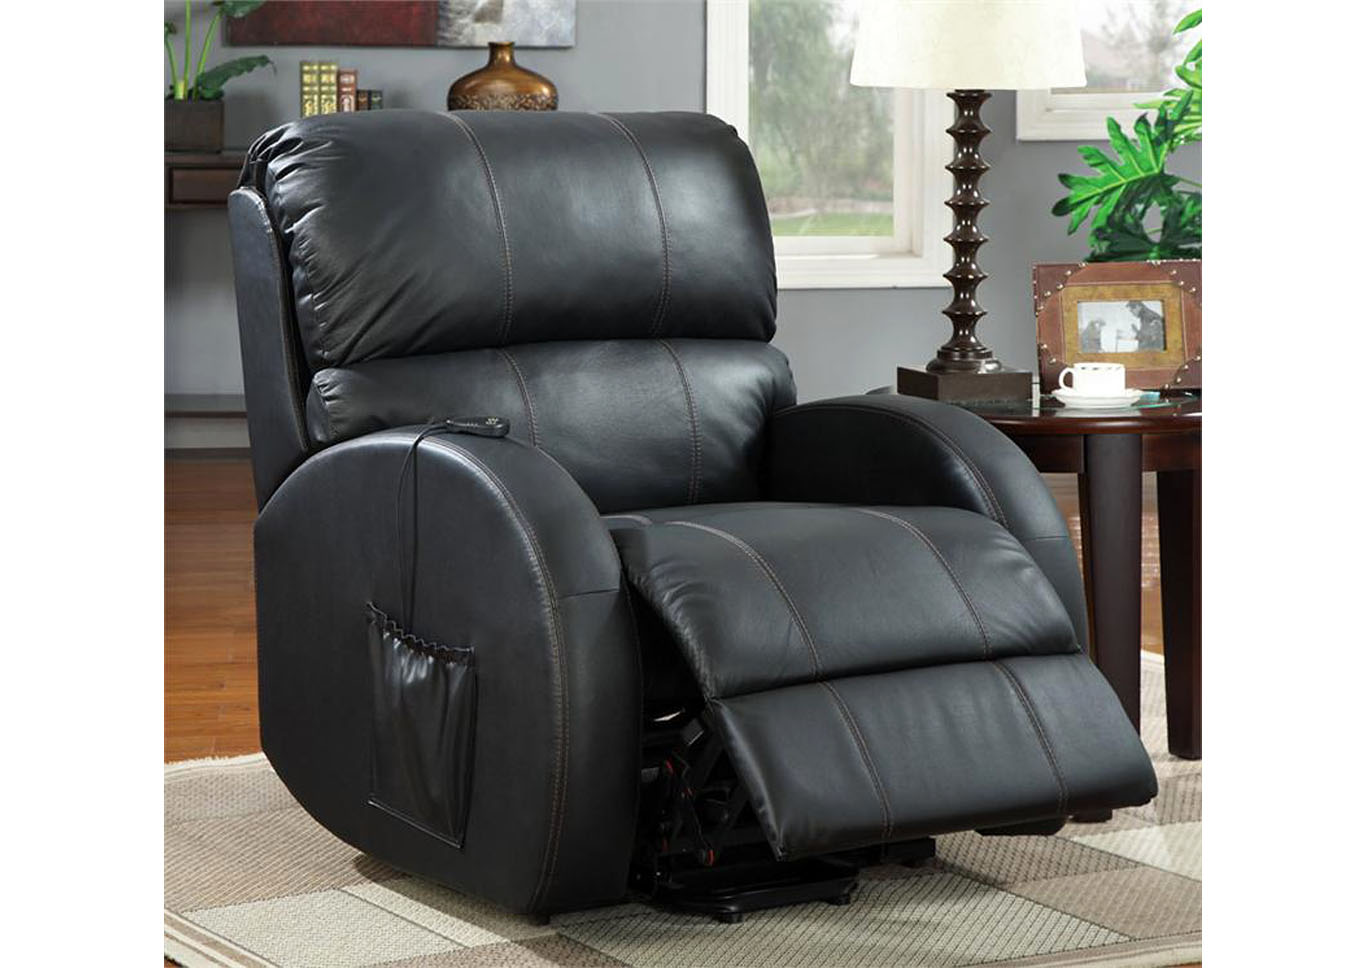 Mabel Power Lift Recliner,Instore